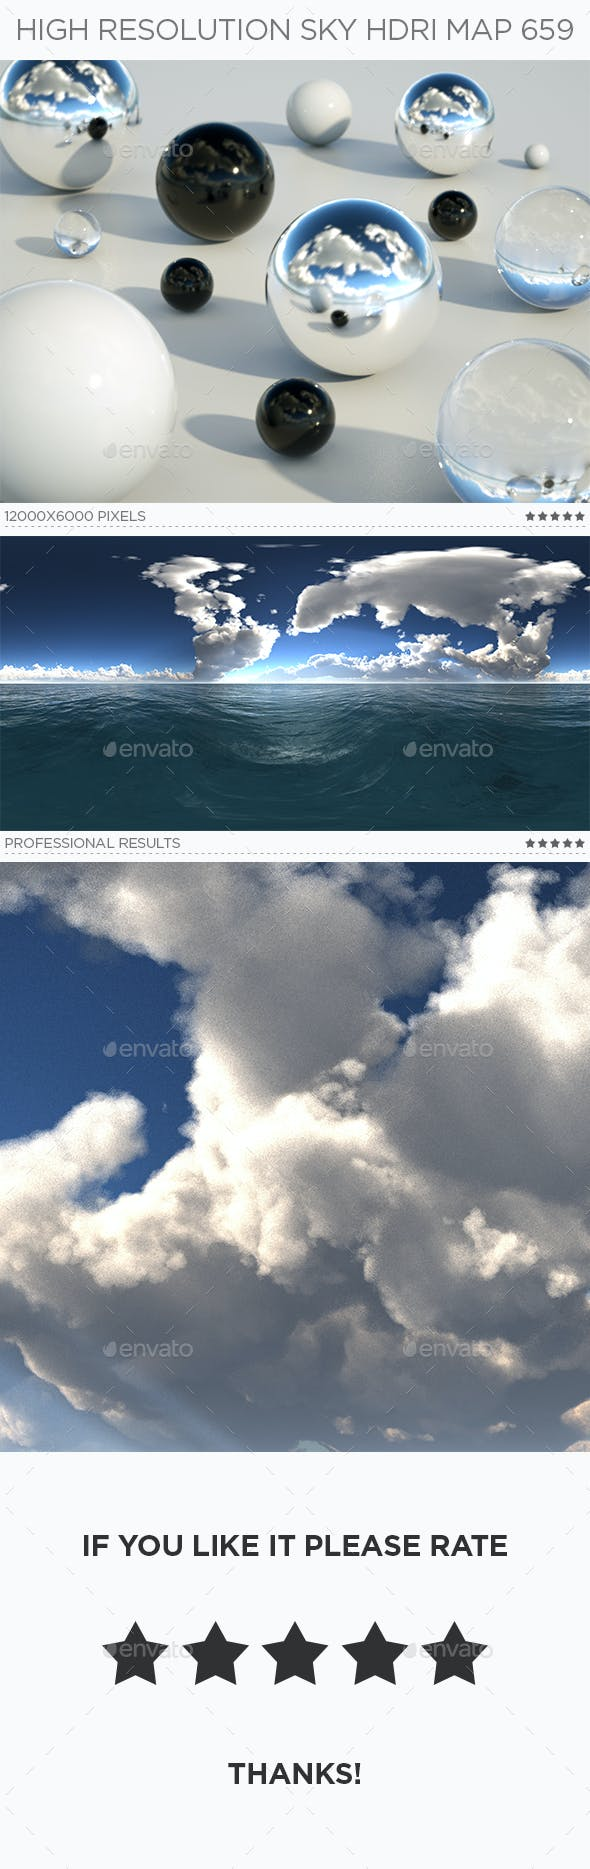 High Resolution Sky HDRi Map 659 - 3DOcean Item for Sale